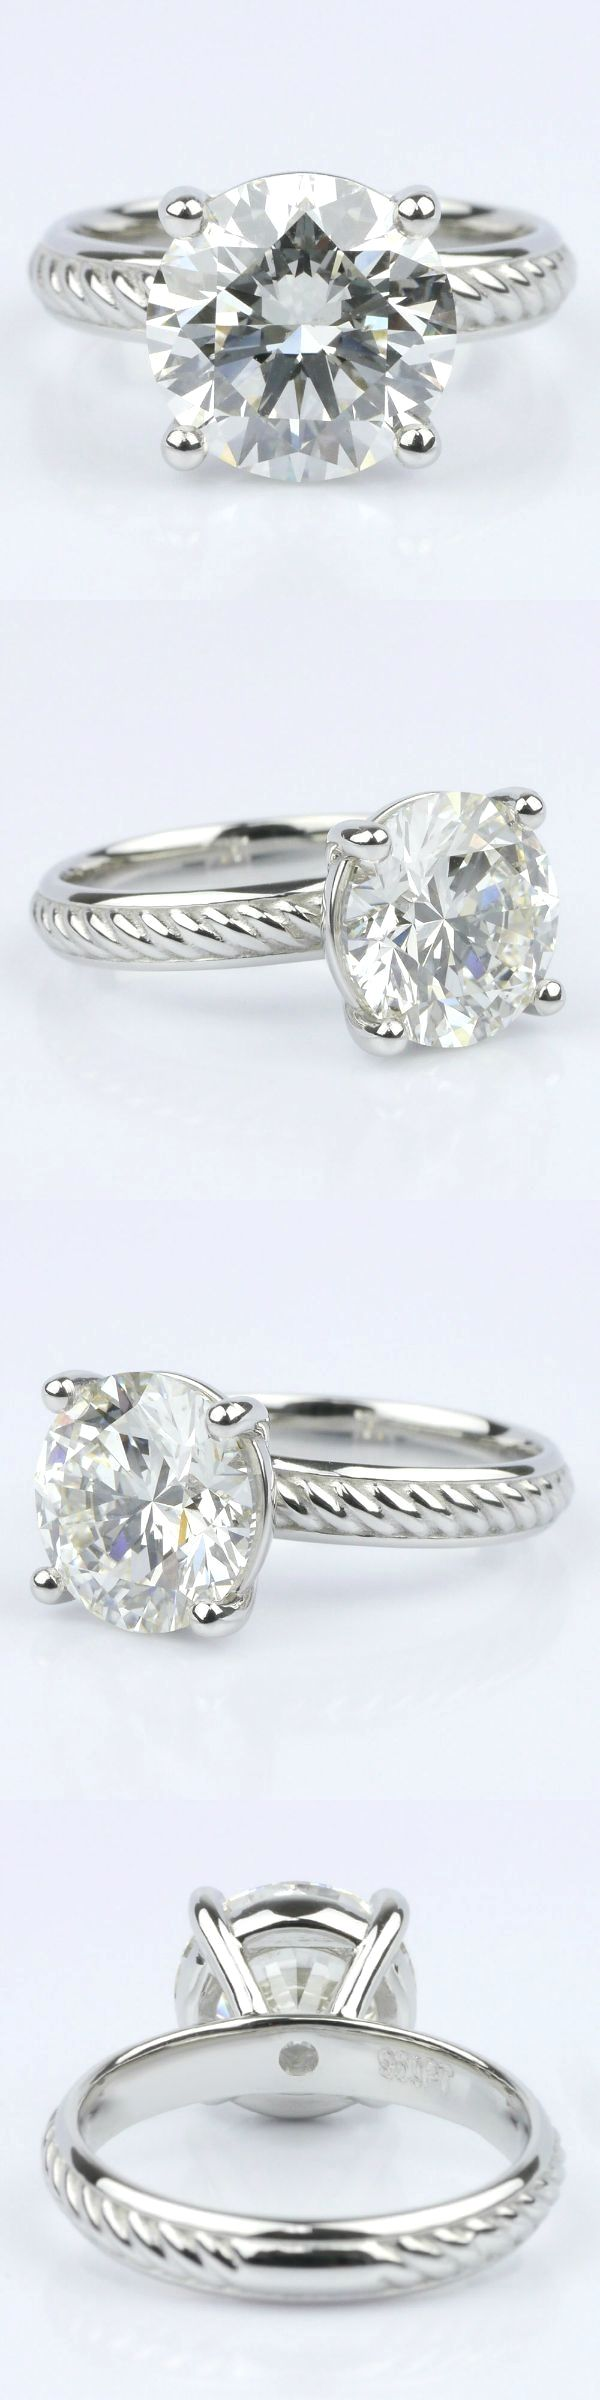 Twisted Rope Comfort Fit Solitaire Engagement Ring. Round 3.53 Ctw. Color: I Clarity: SI1 Cut: Super Ideal Certification: GIA Diamond/Gem Cost: $39,120 Twisted Rope Solitaire Engagement Rin Metal: Platinum Setting Cost: $1,095